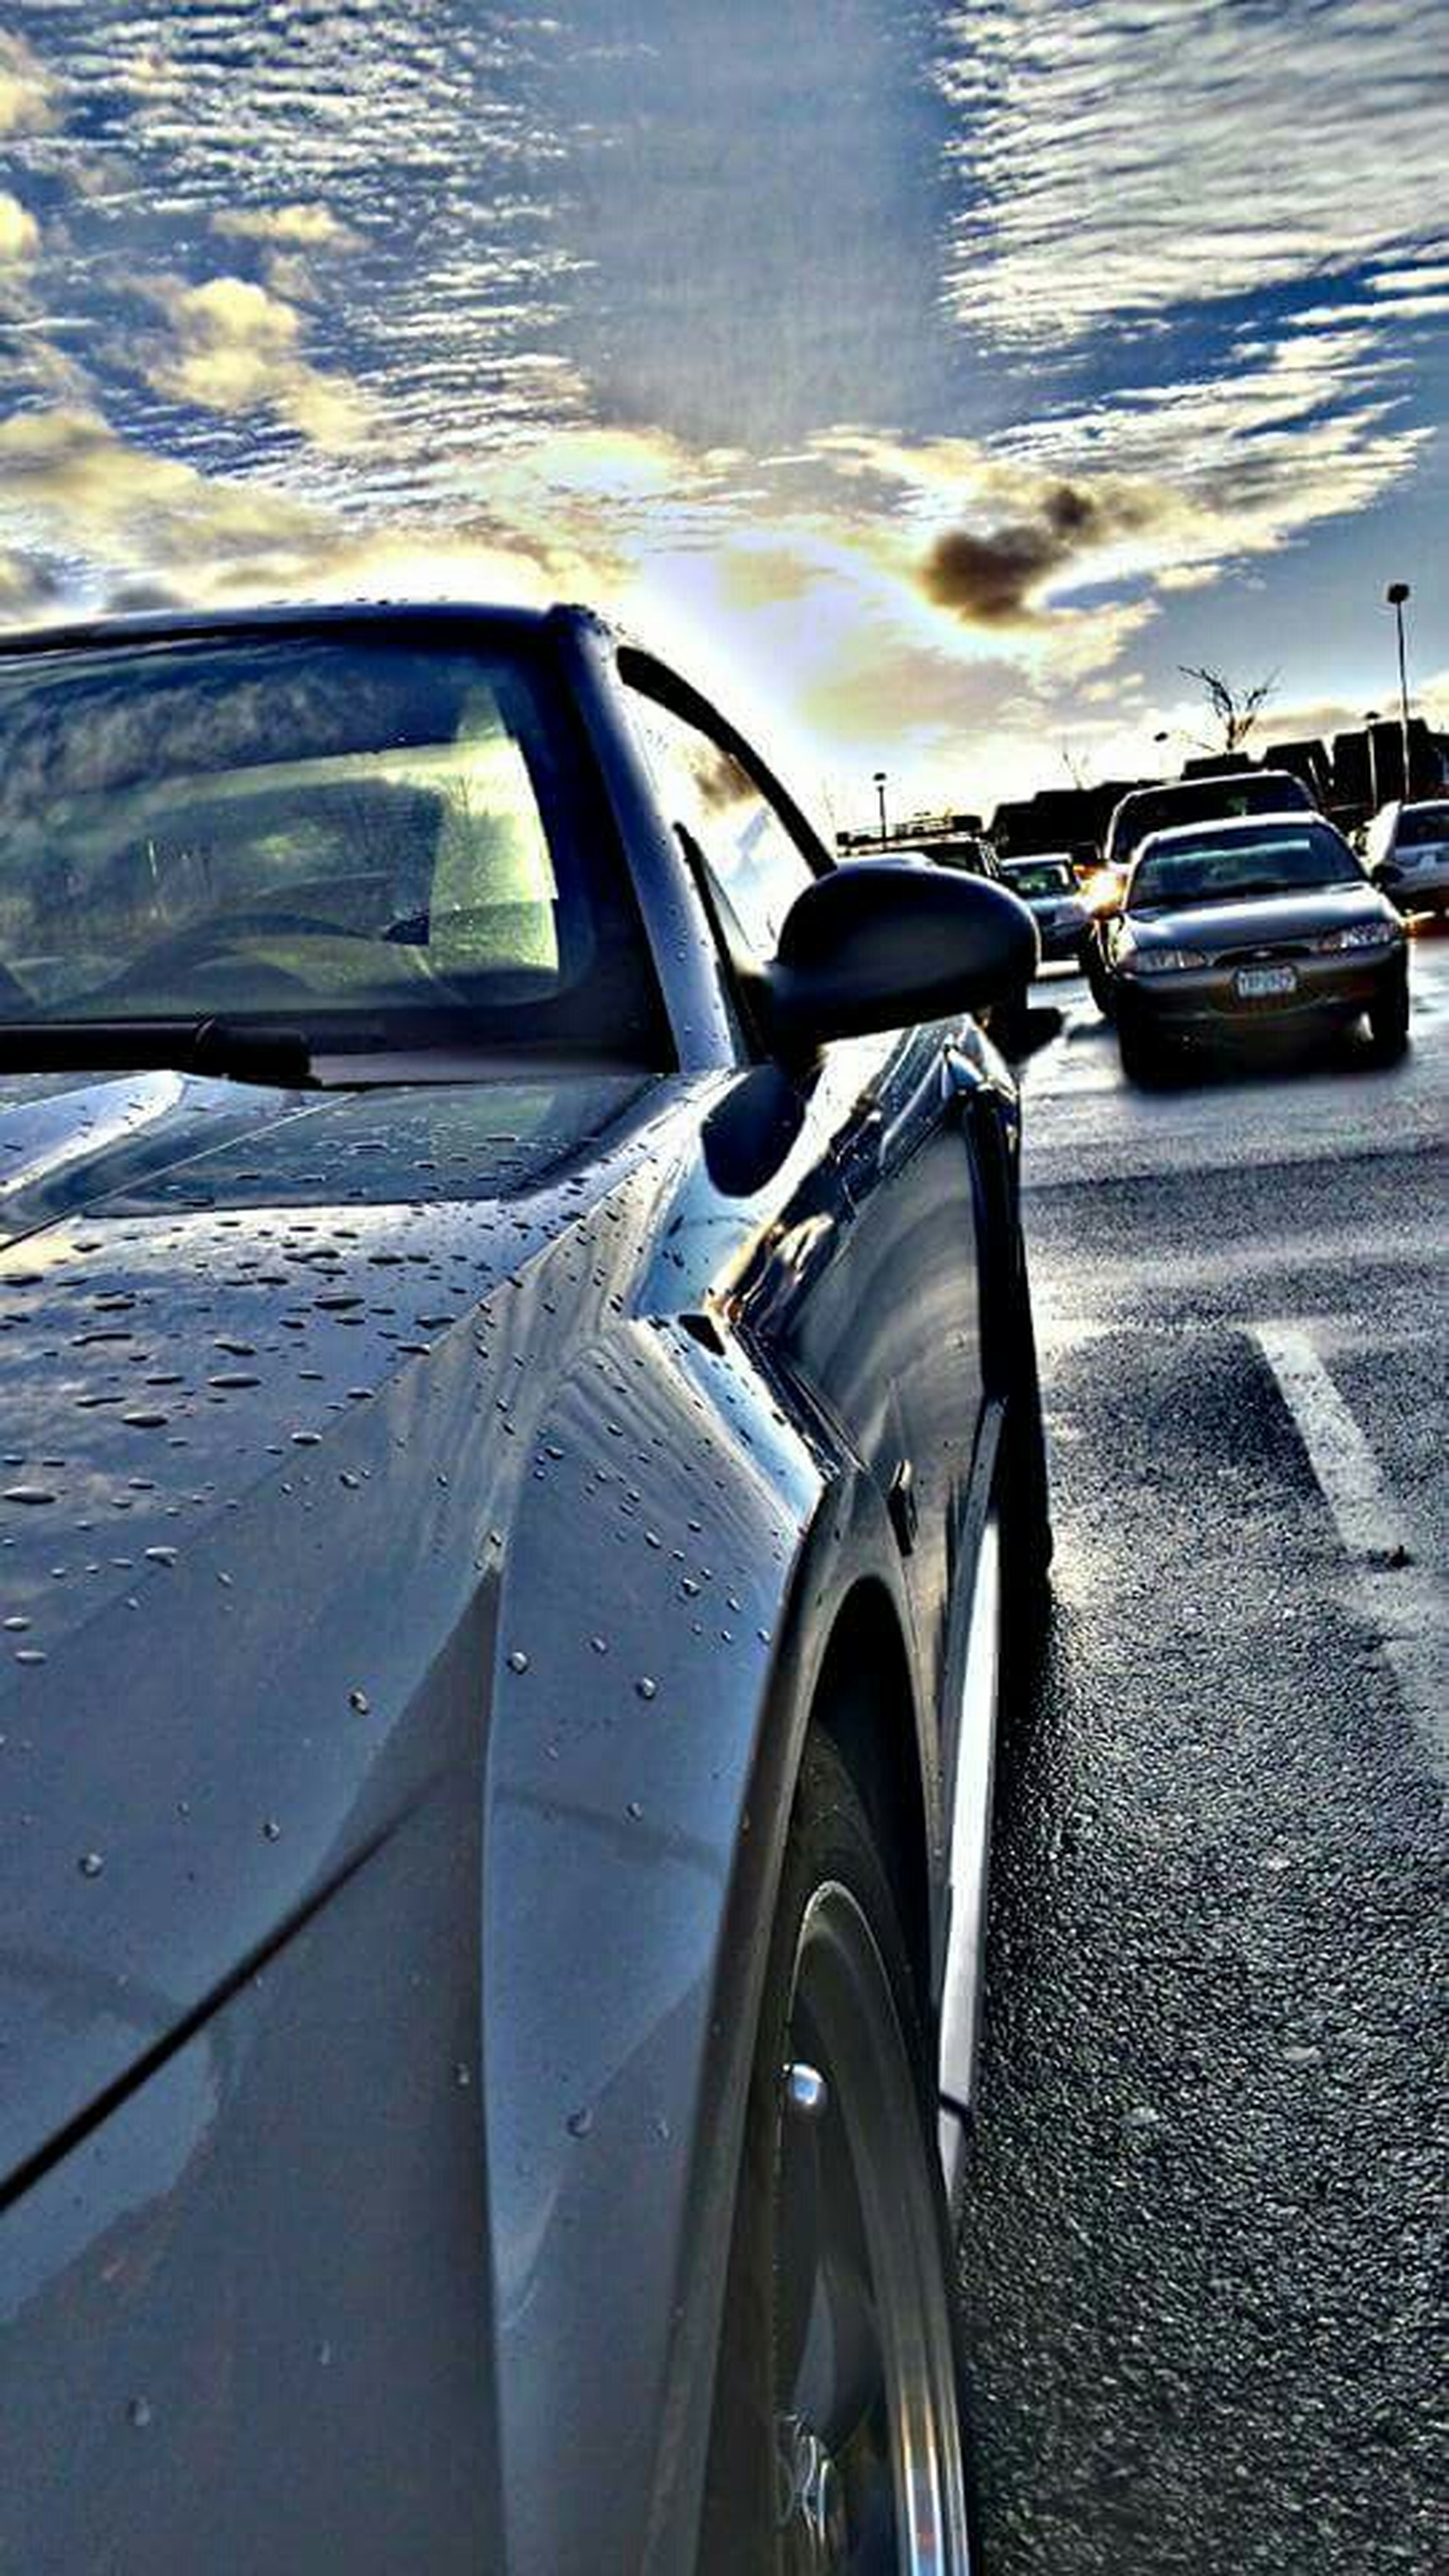 My Mustang Life!😎✌🌴Ford Mustang Mustang GT Muscle Cars 4.6 8cylinders Fast Fun First Eyeem Photo